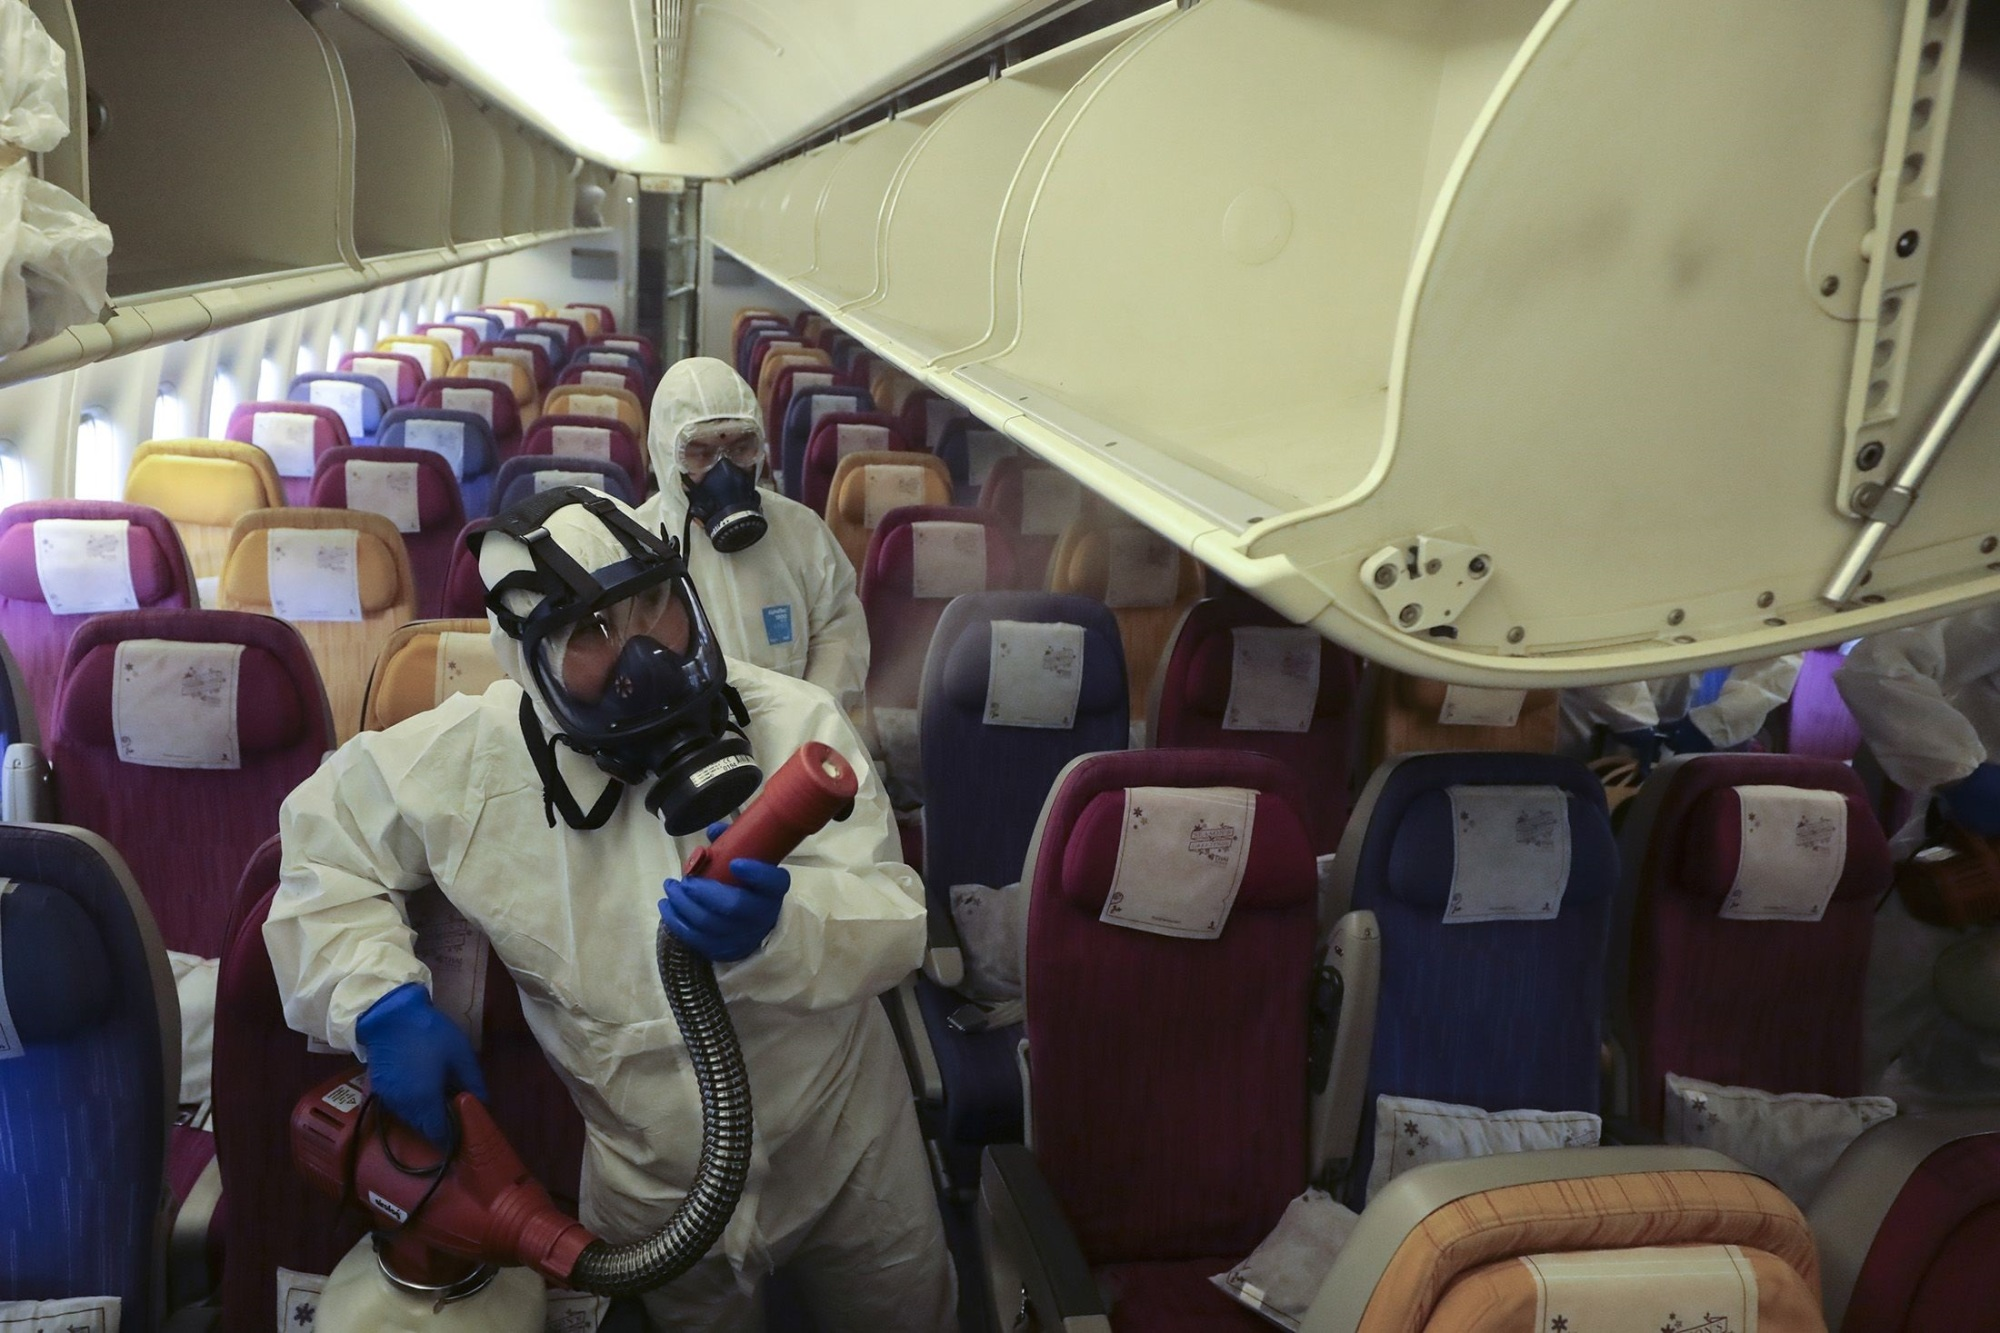 Disinfectant is sprayed on an airplane by staff in hazmat suits. | PHOTOGRAPHER: PATIPAT JANTHONG/B